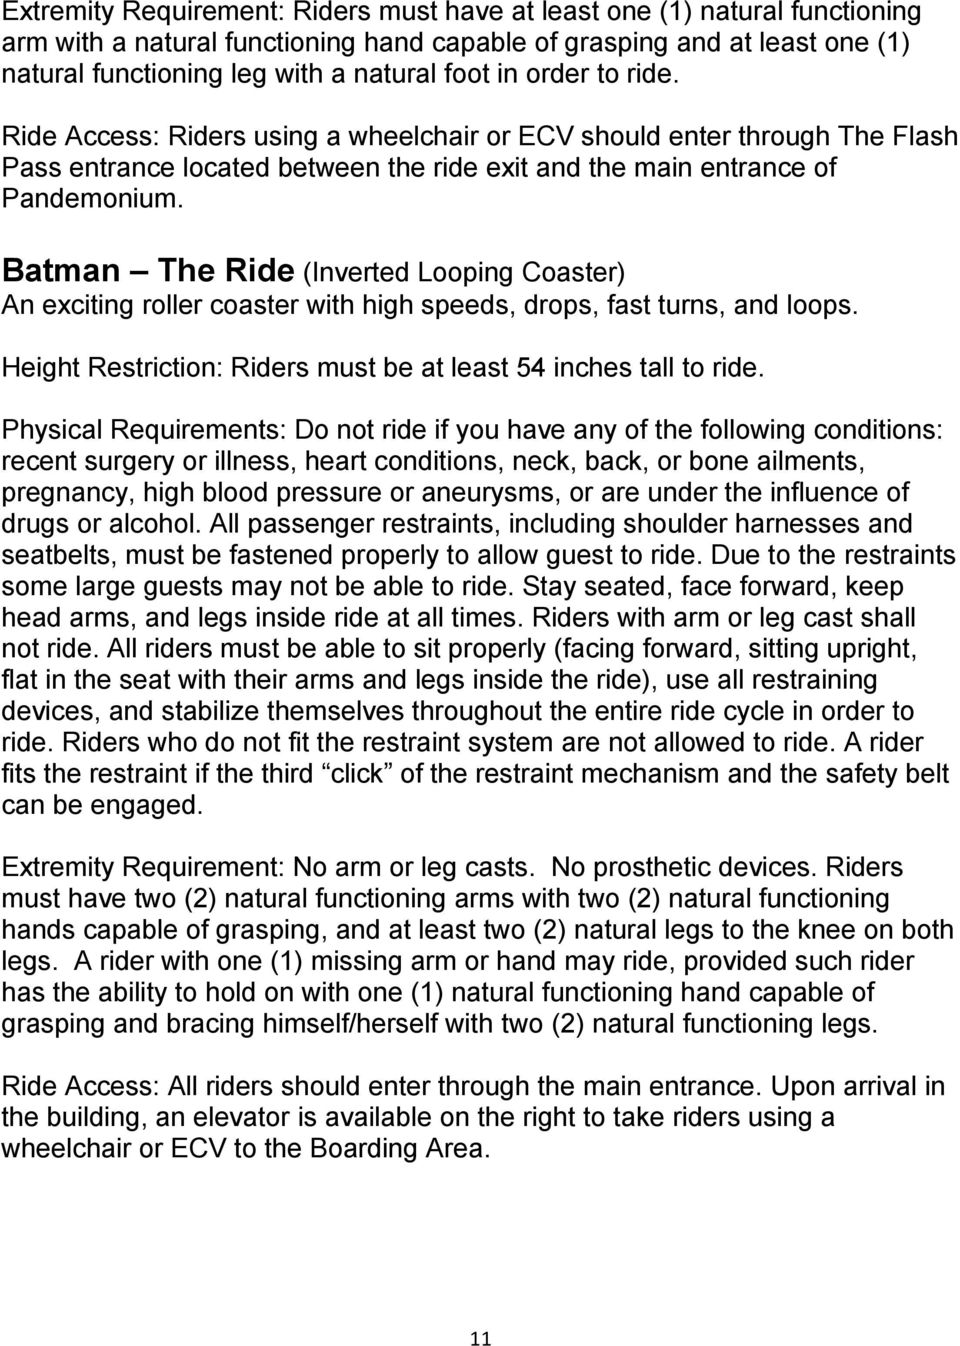 Batman The Ride (Inverted Looping Coaster) An exciting roller coaster with high speeds, drops, fast turns, and loops. Height Restriction: Riders must be at least 54 inches tall to ride.